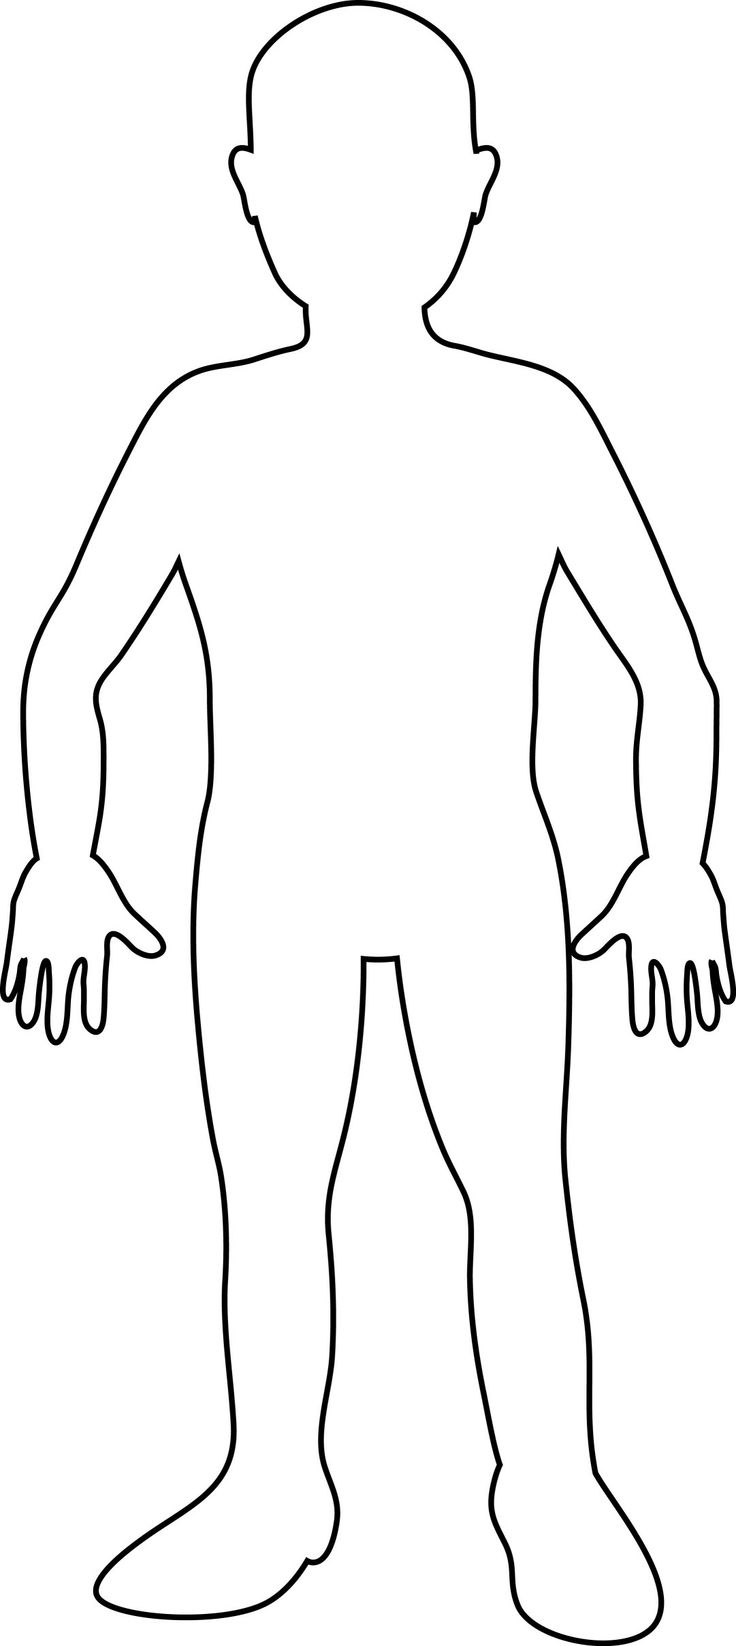 Outline of a body clipart clip stock Human Body Outline Printable - Cliparts.co clip stock